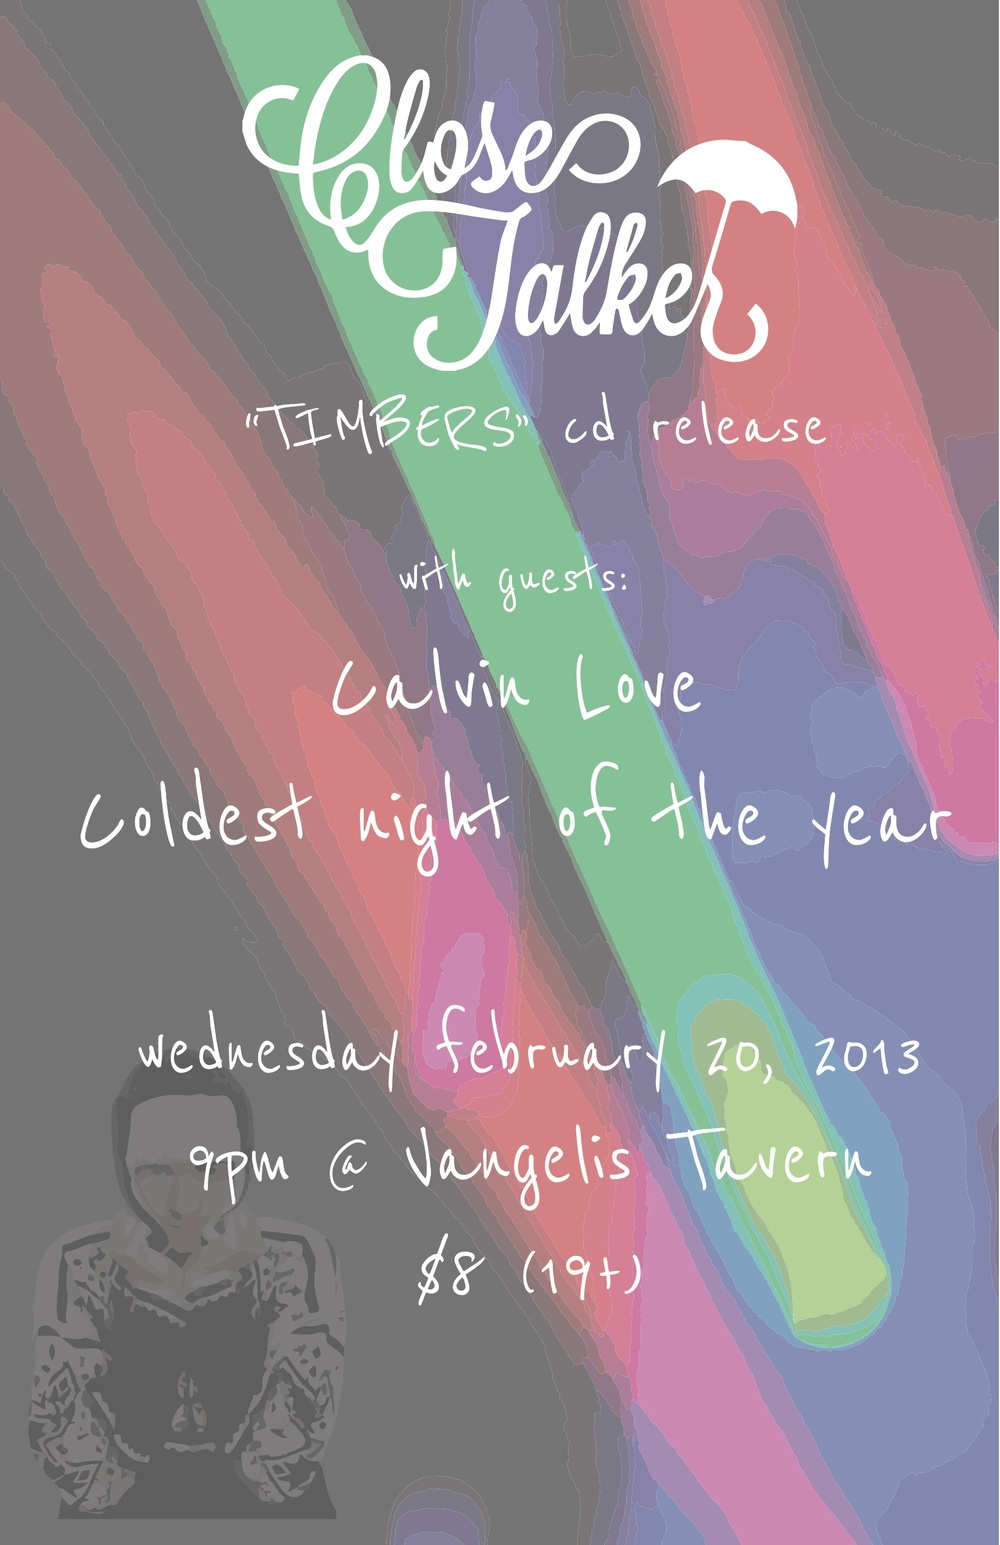 I  had a lot of fun making this poster for Close Talker's cd release show. It should be a great show and an amazing cd!